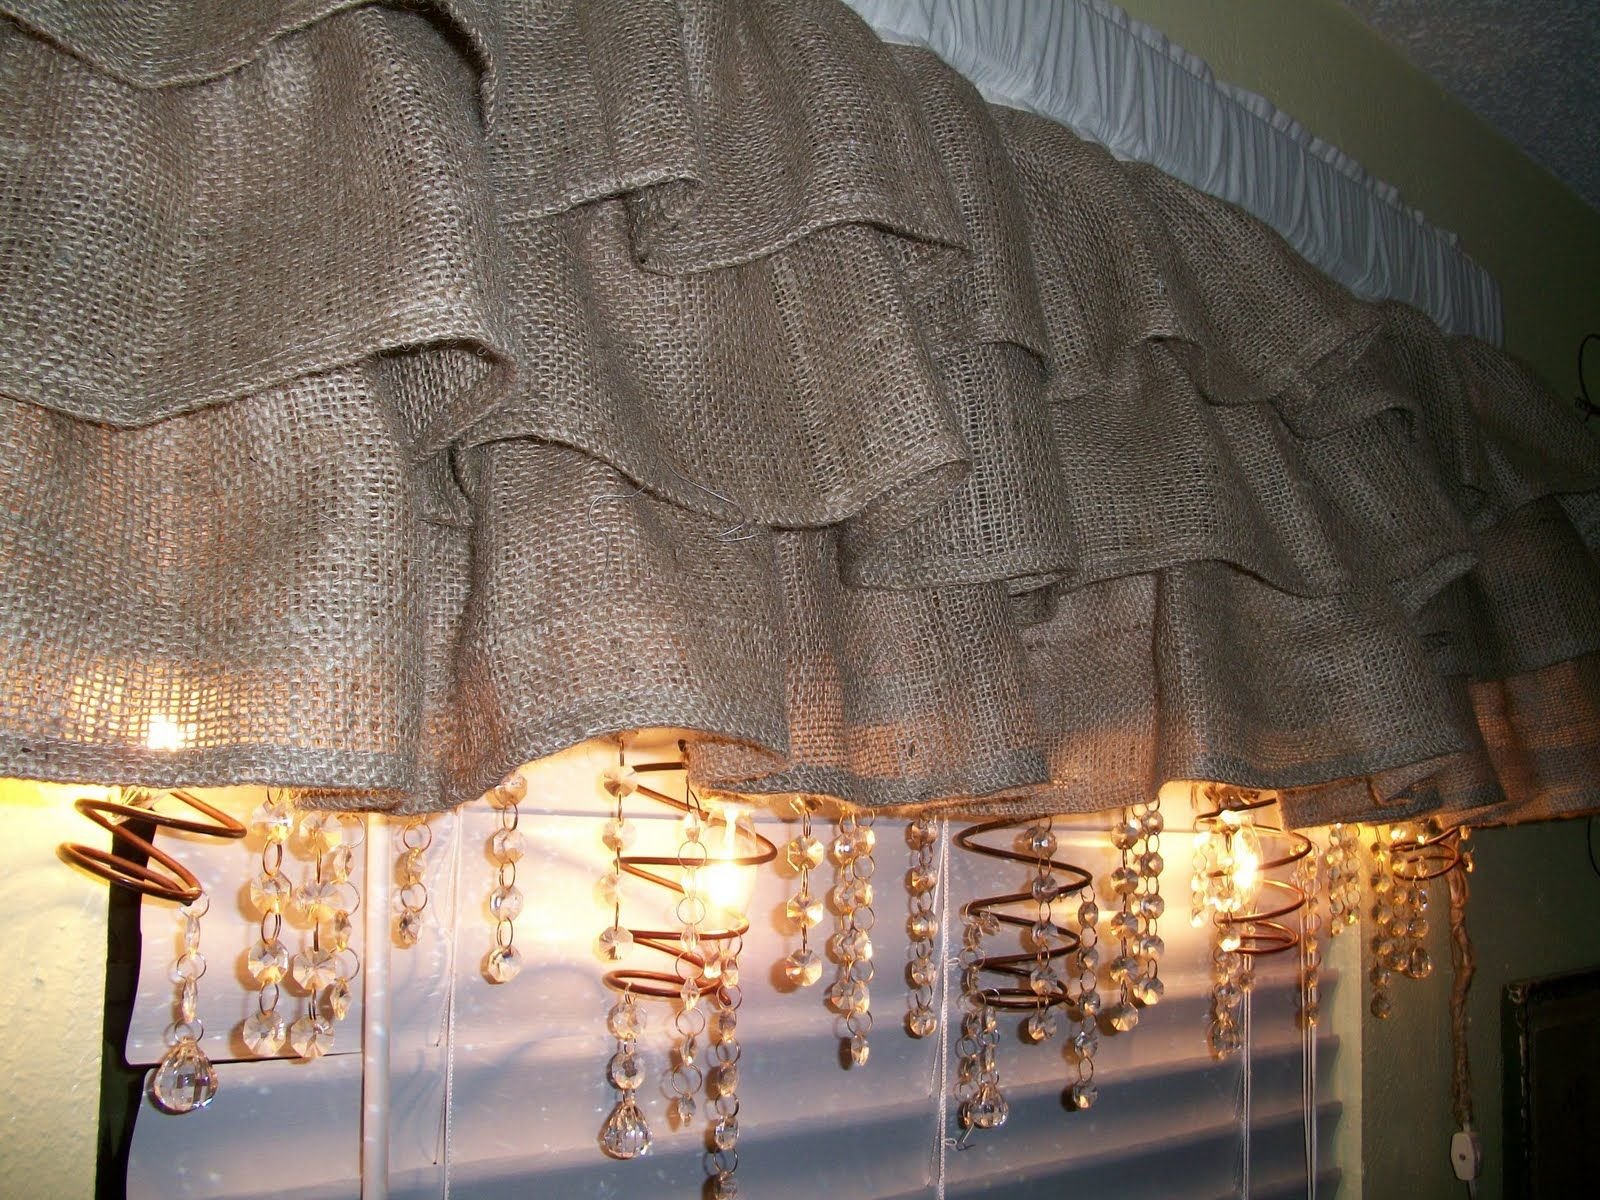 Outside window treatment ideas  suzetteus burlap bling and rusty bed springsunning i think i